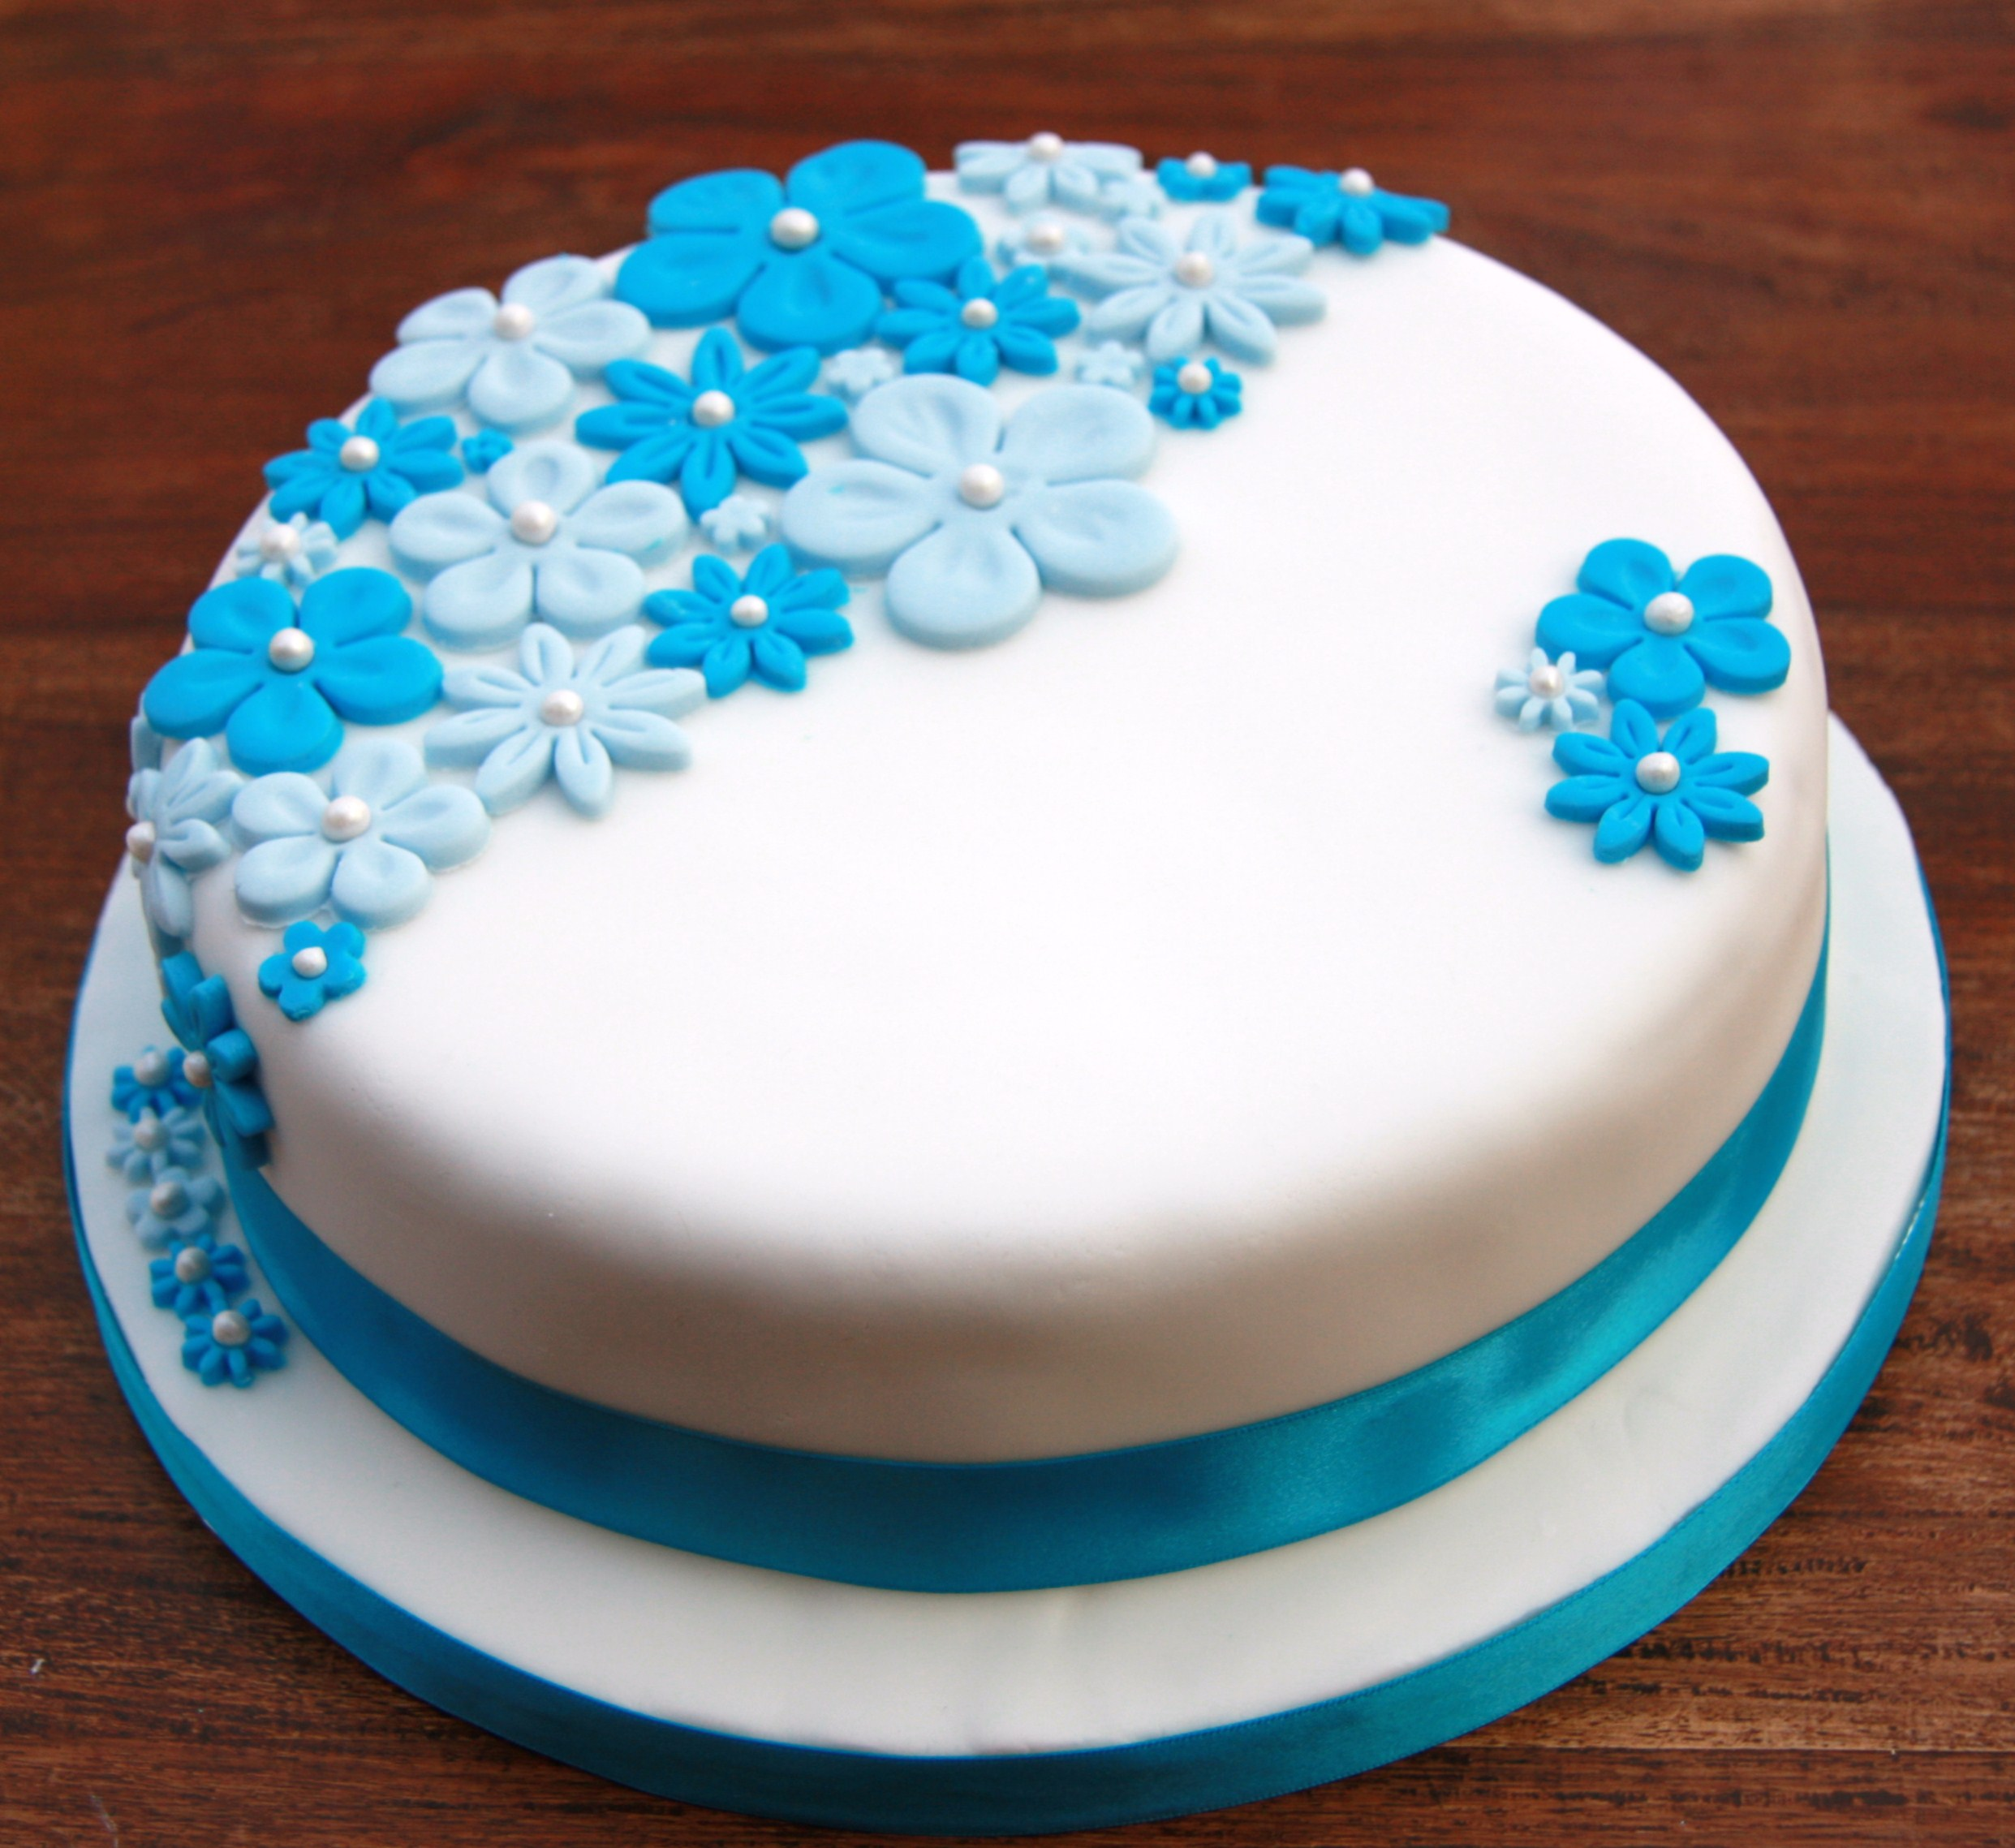 Birthday Cake For Him Images : Birthday Cake with Blue Flowers   lovinghomemade